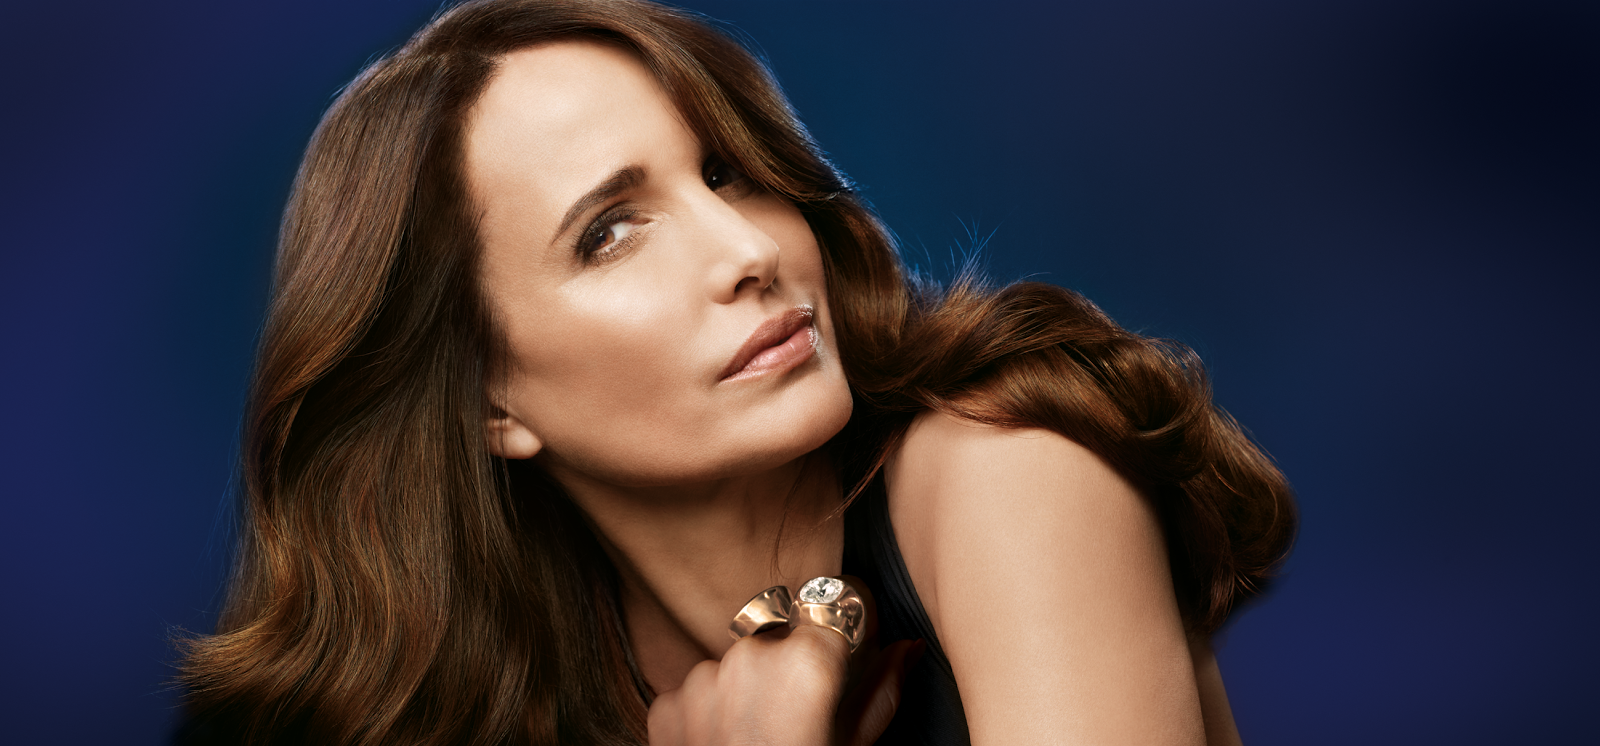 Actress Andie MacDowell wears L'Oréal Paris Visible Lift Blur Foundation